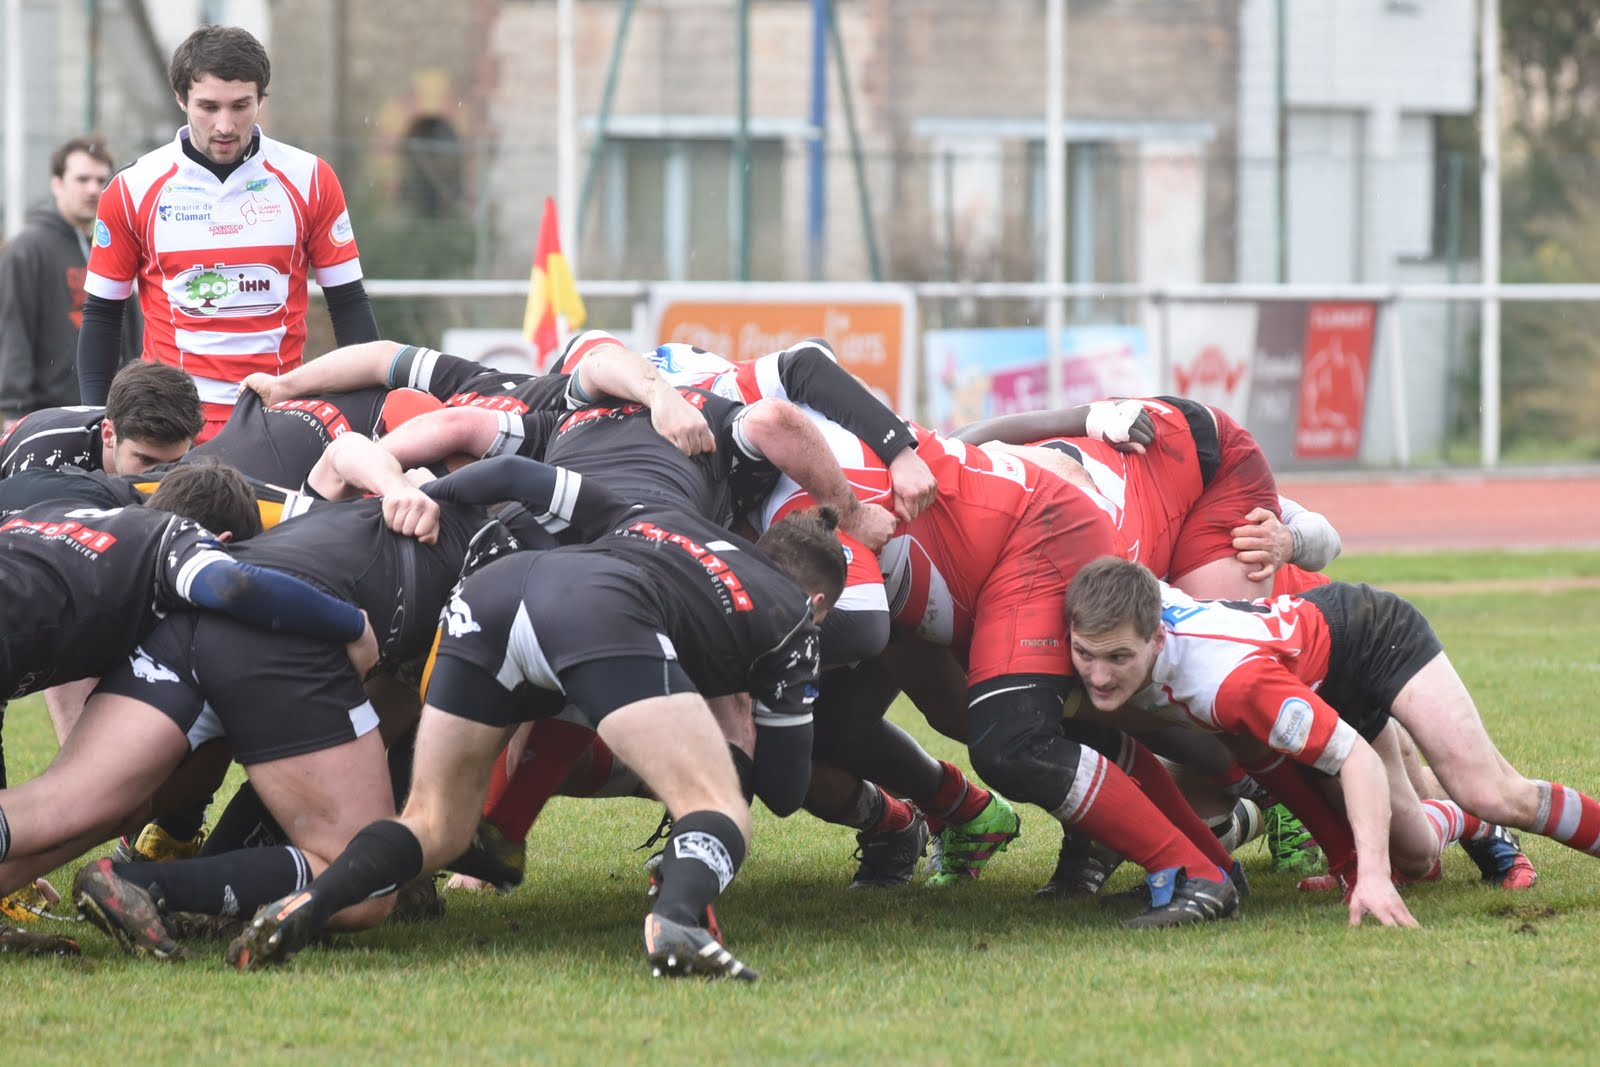 clamart rugby 92